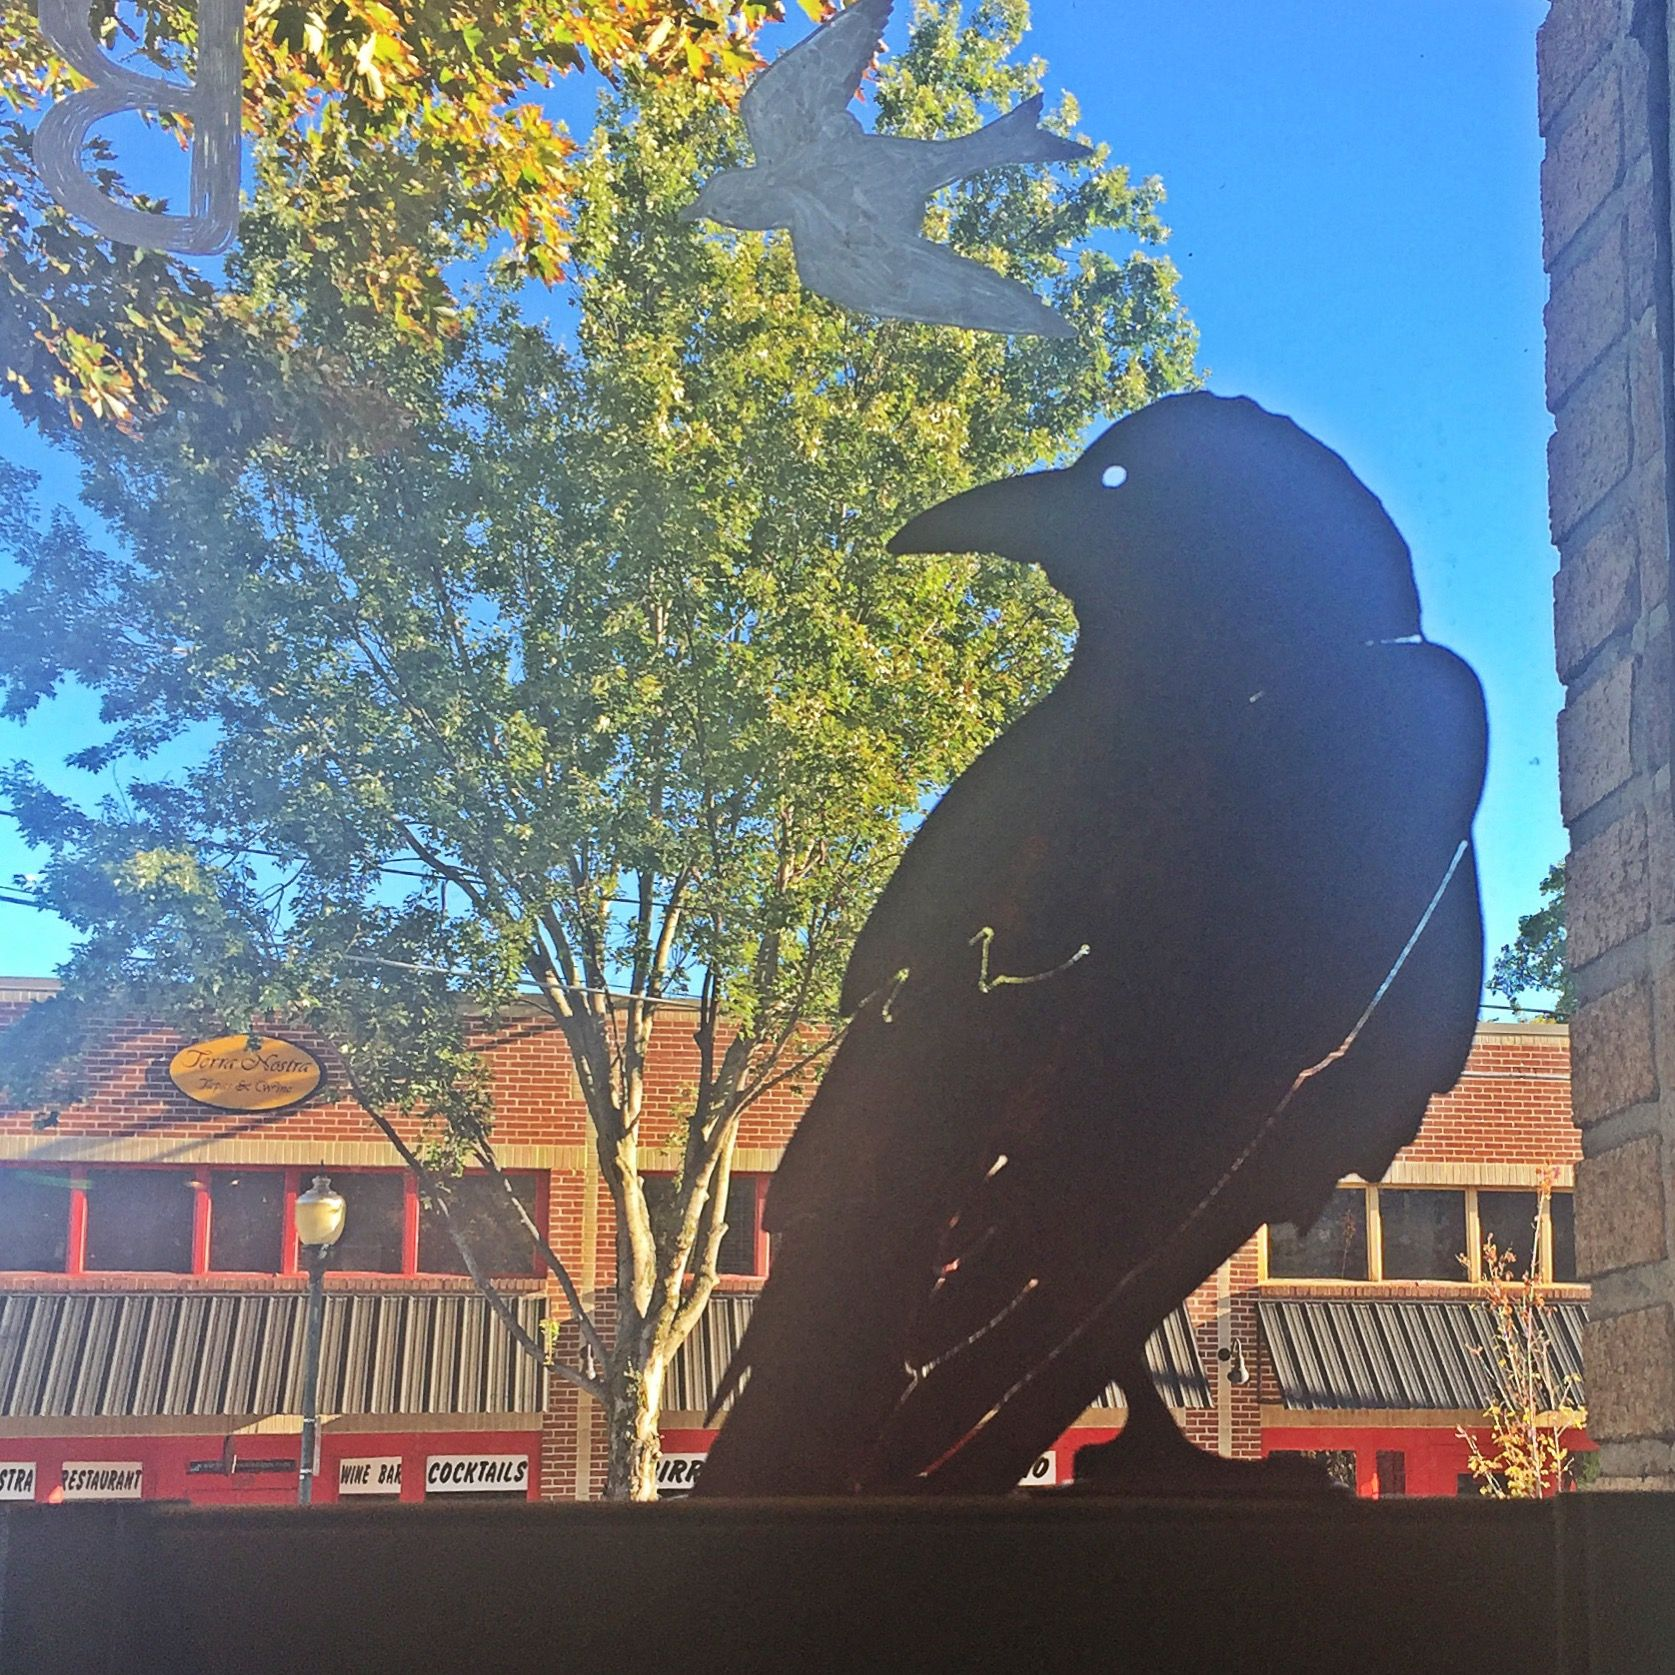 This old crow has been keeping one eye on Frazier Avenue. His distressed patina is great for indoor or outdoor decoration and comes with a stand alone base that easily affixes to branches, fences, windows and doors. Available at blue skies.